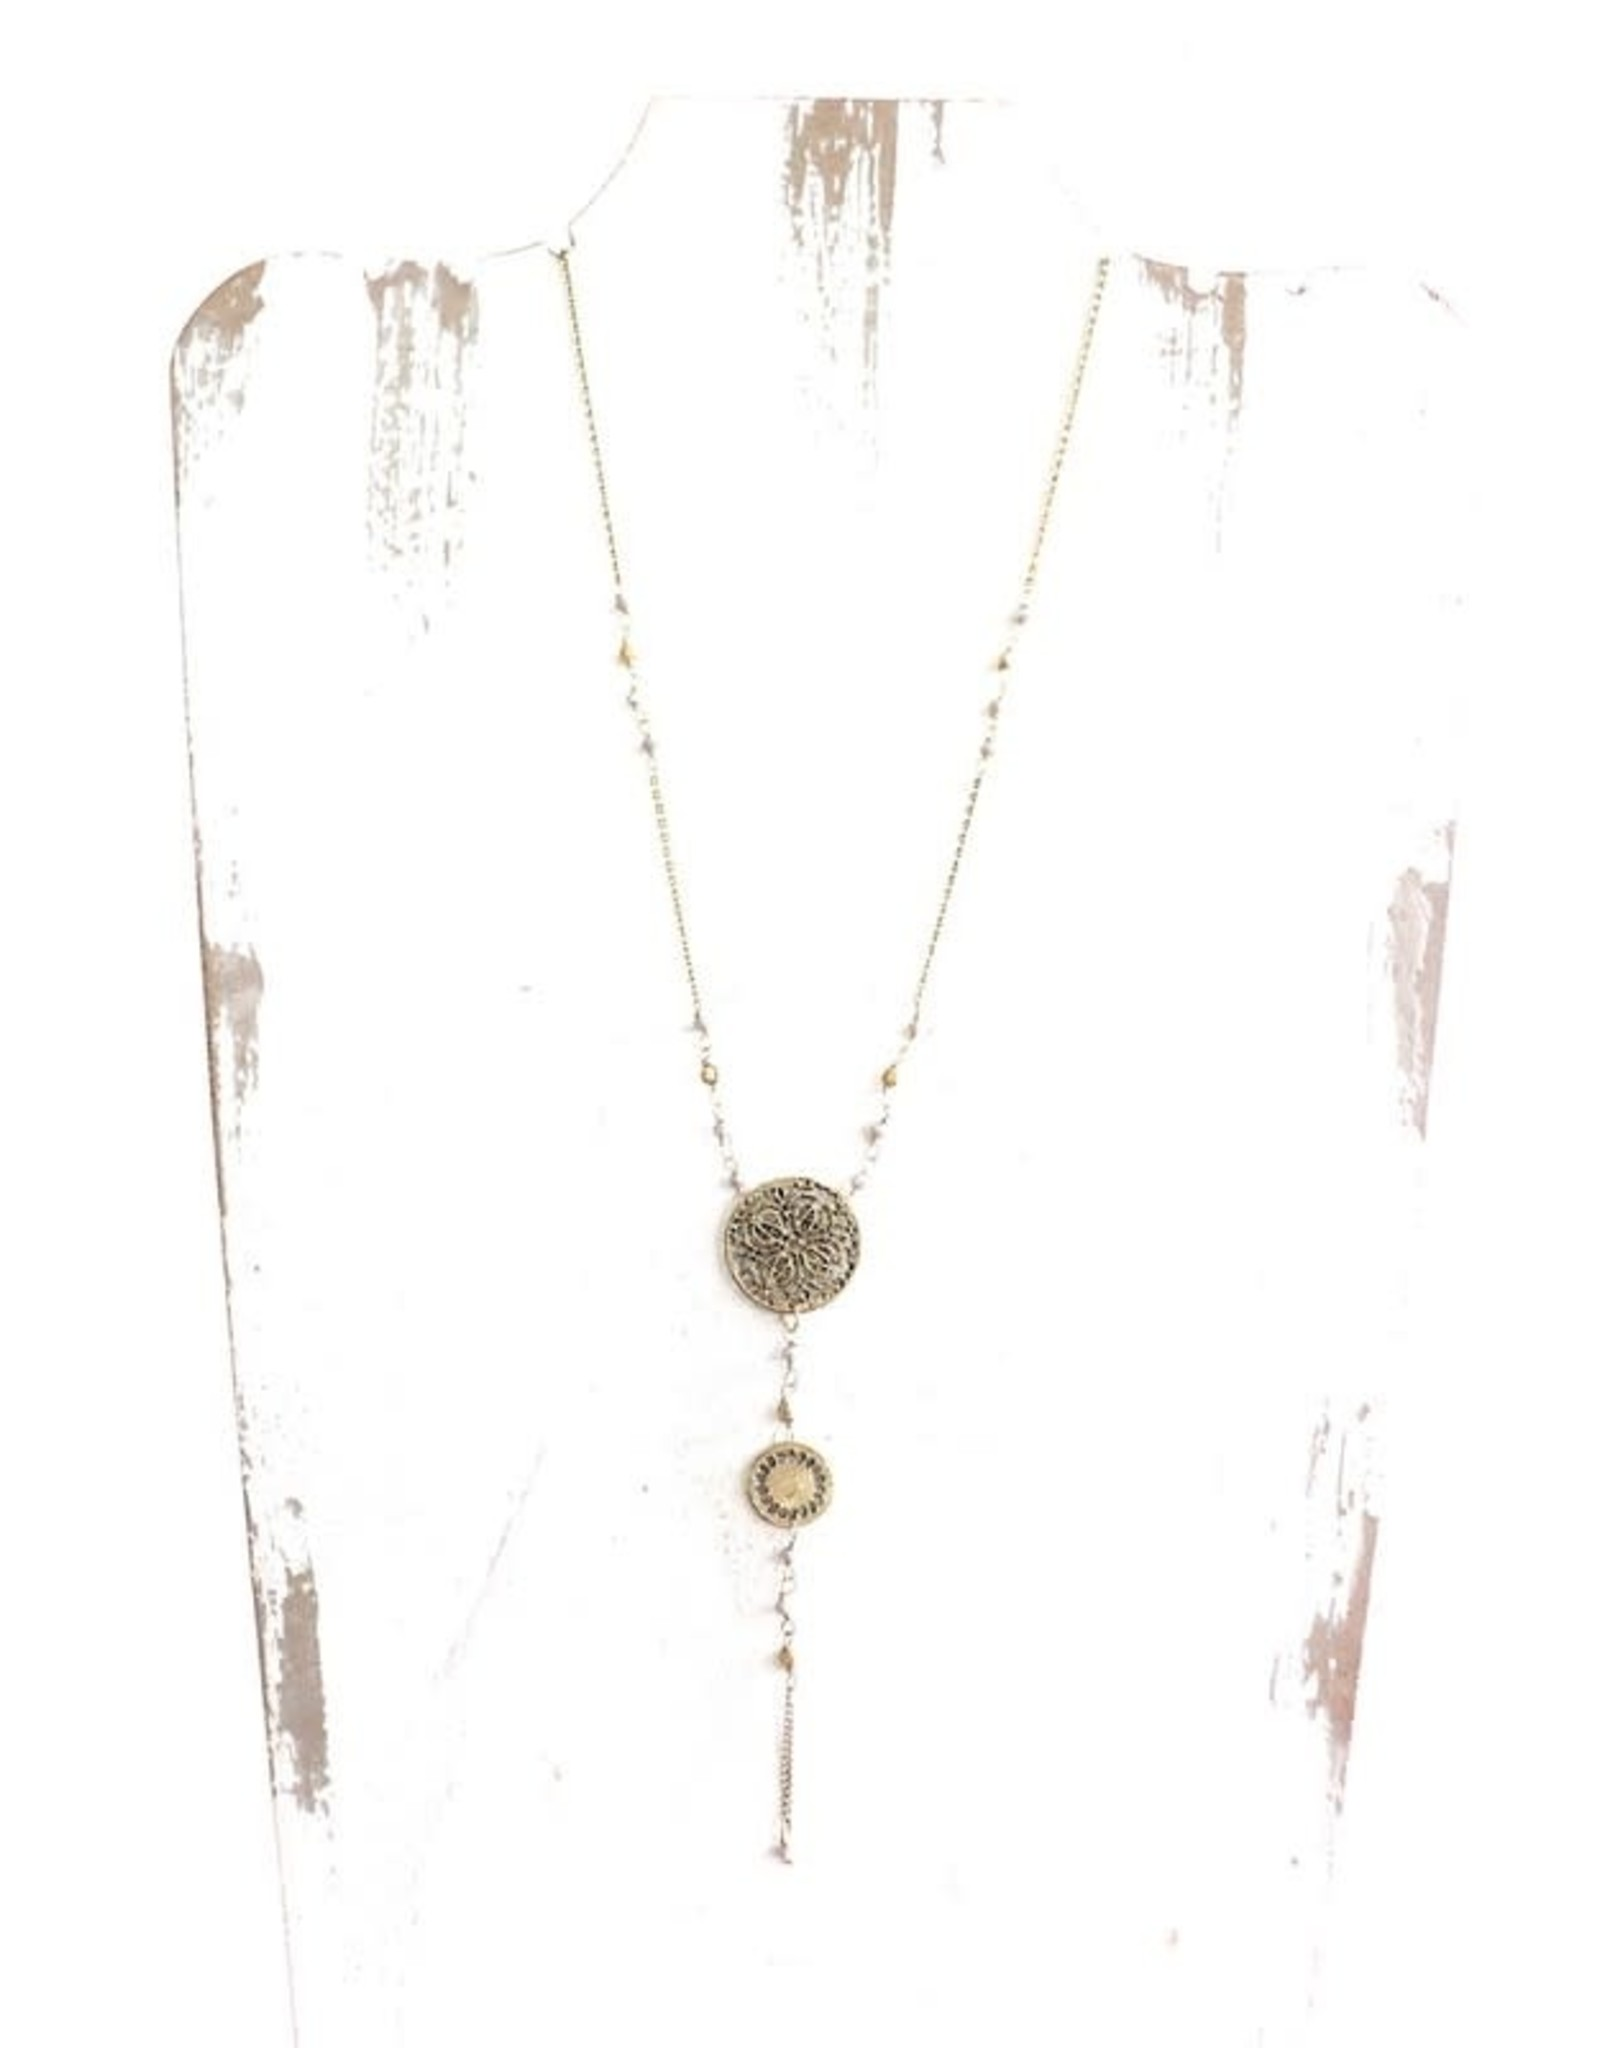 LONG BRASS PRESSED MEDALLION W/ BEAD NECKLACE N-57